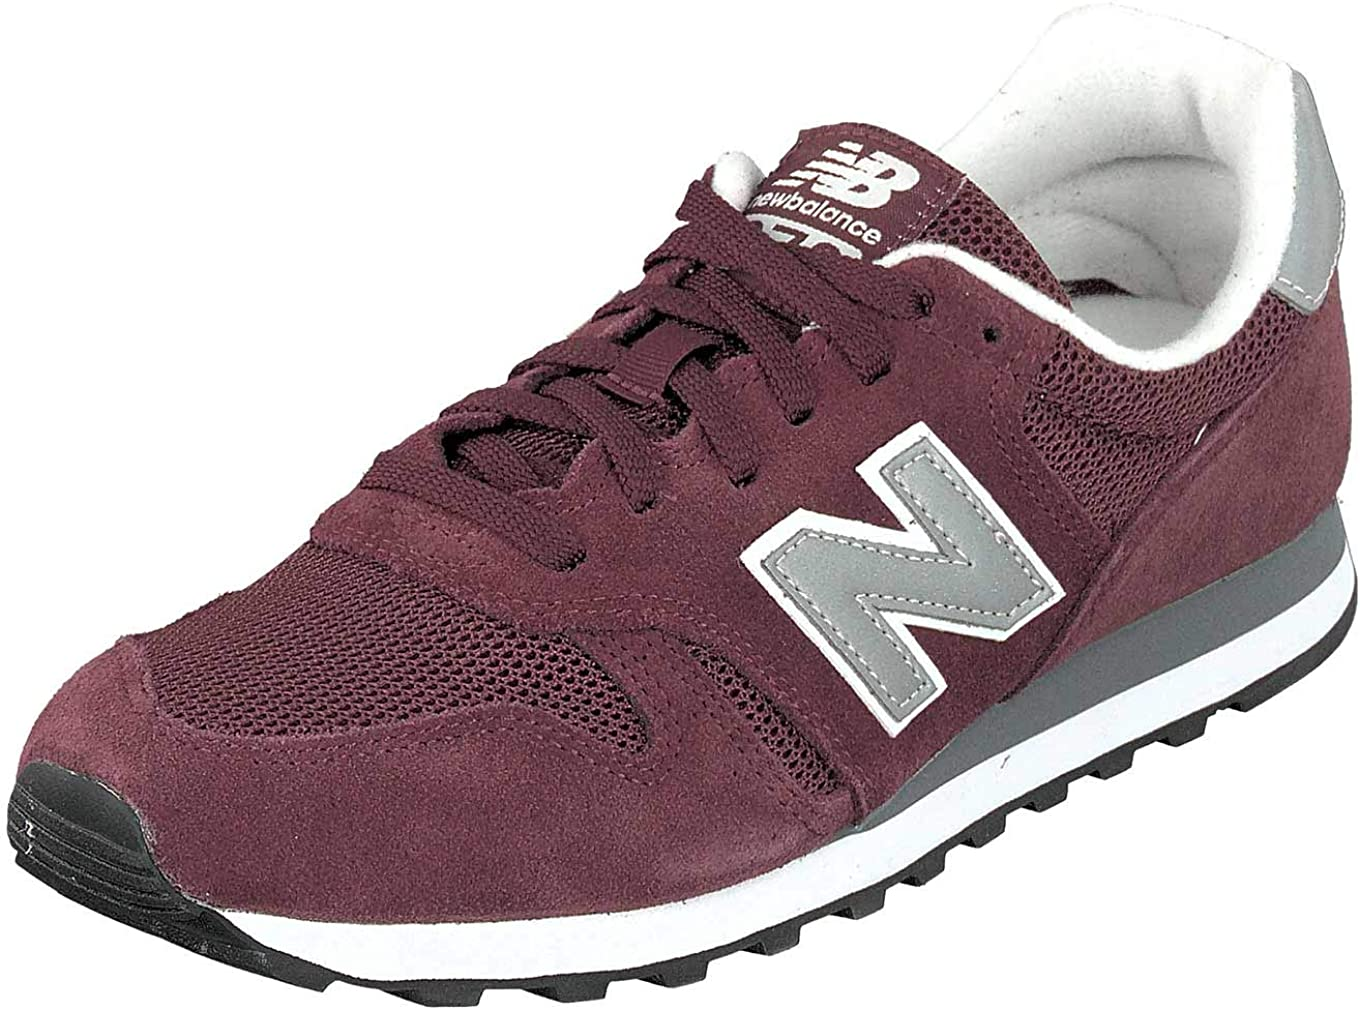 New Balance ML373 Men's Low Sneaker Red: Amazon.co.uk: Shoes & Bags